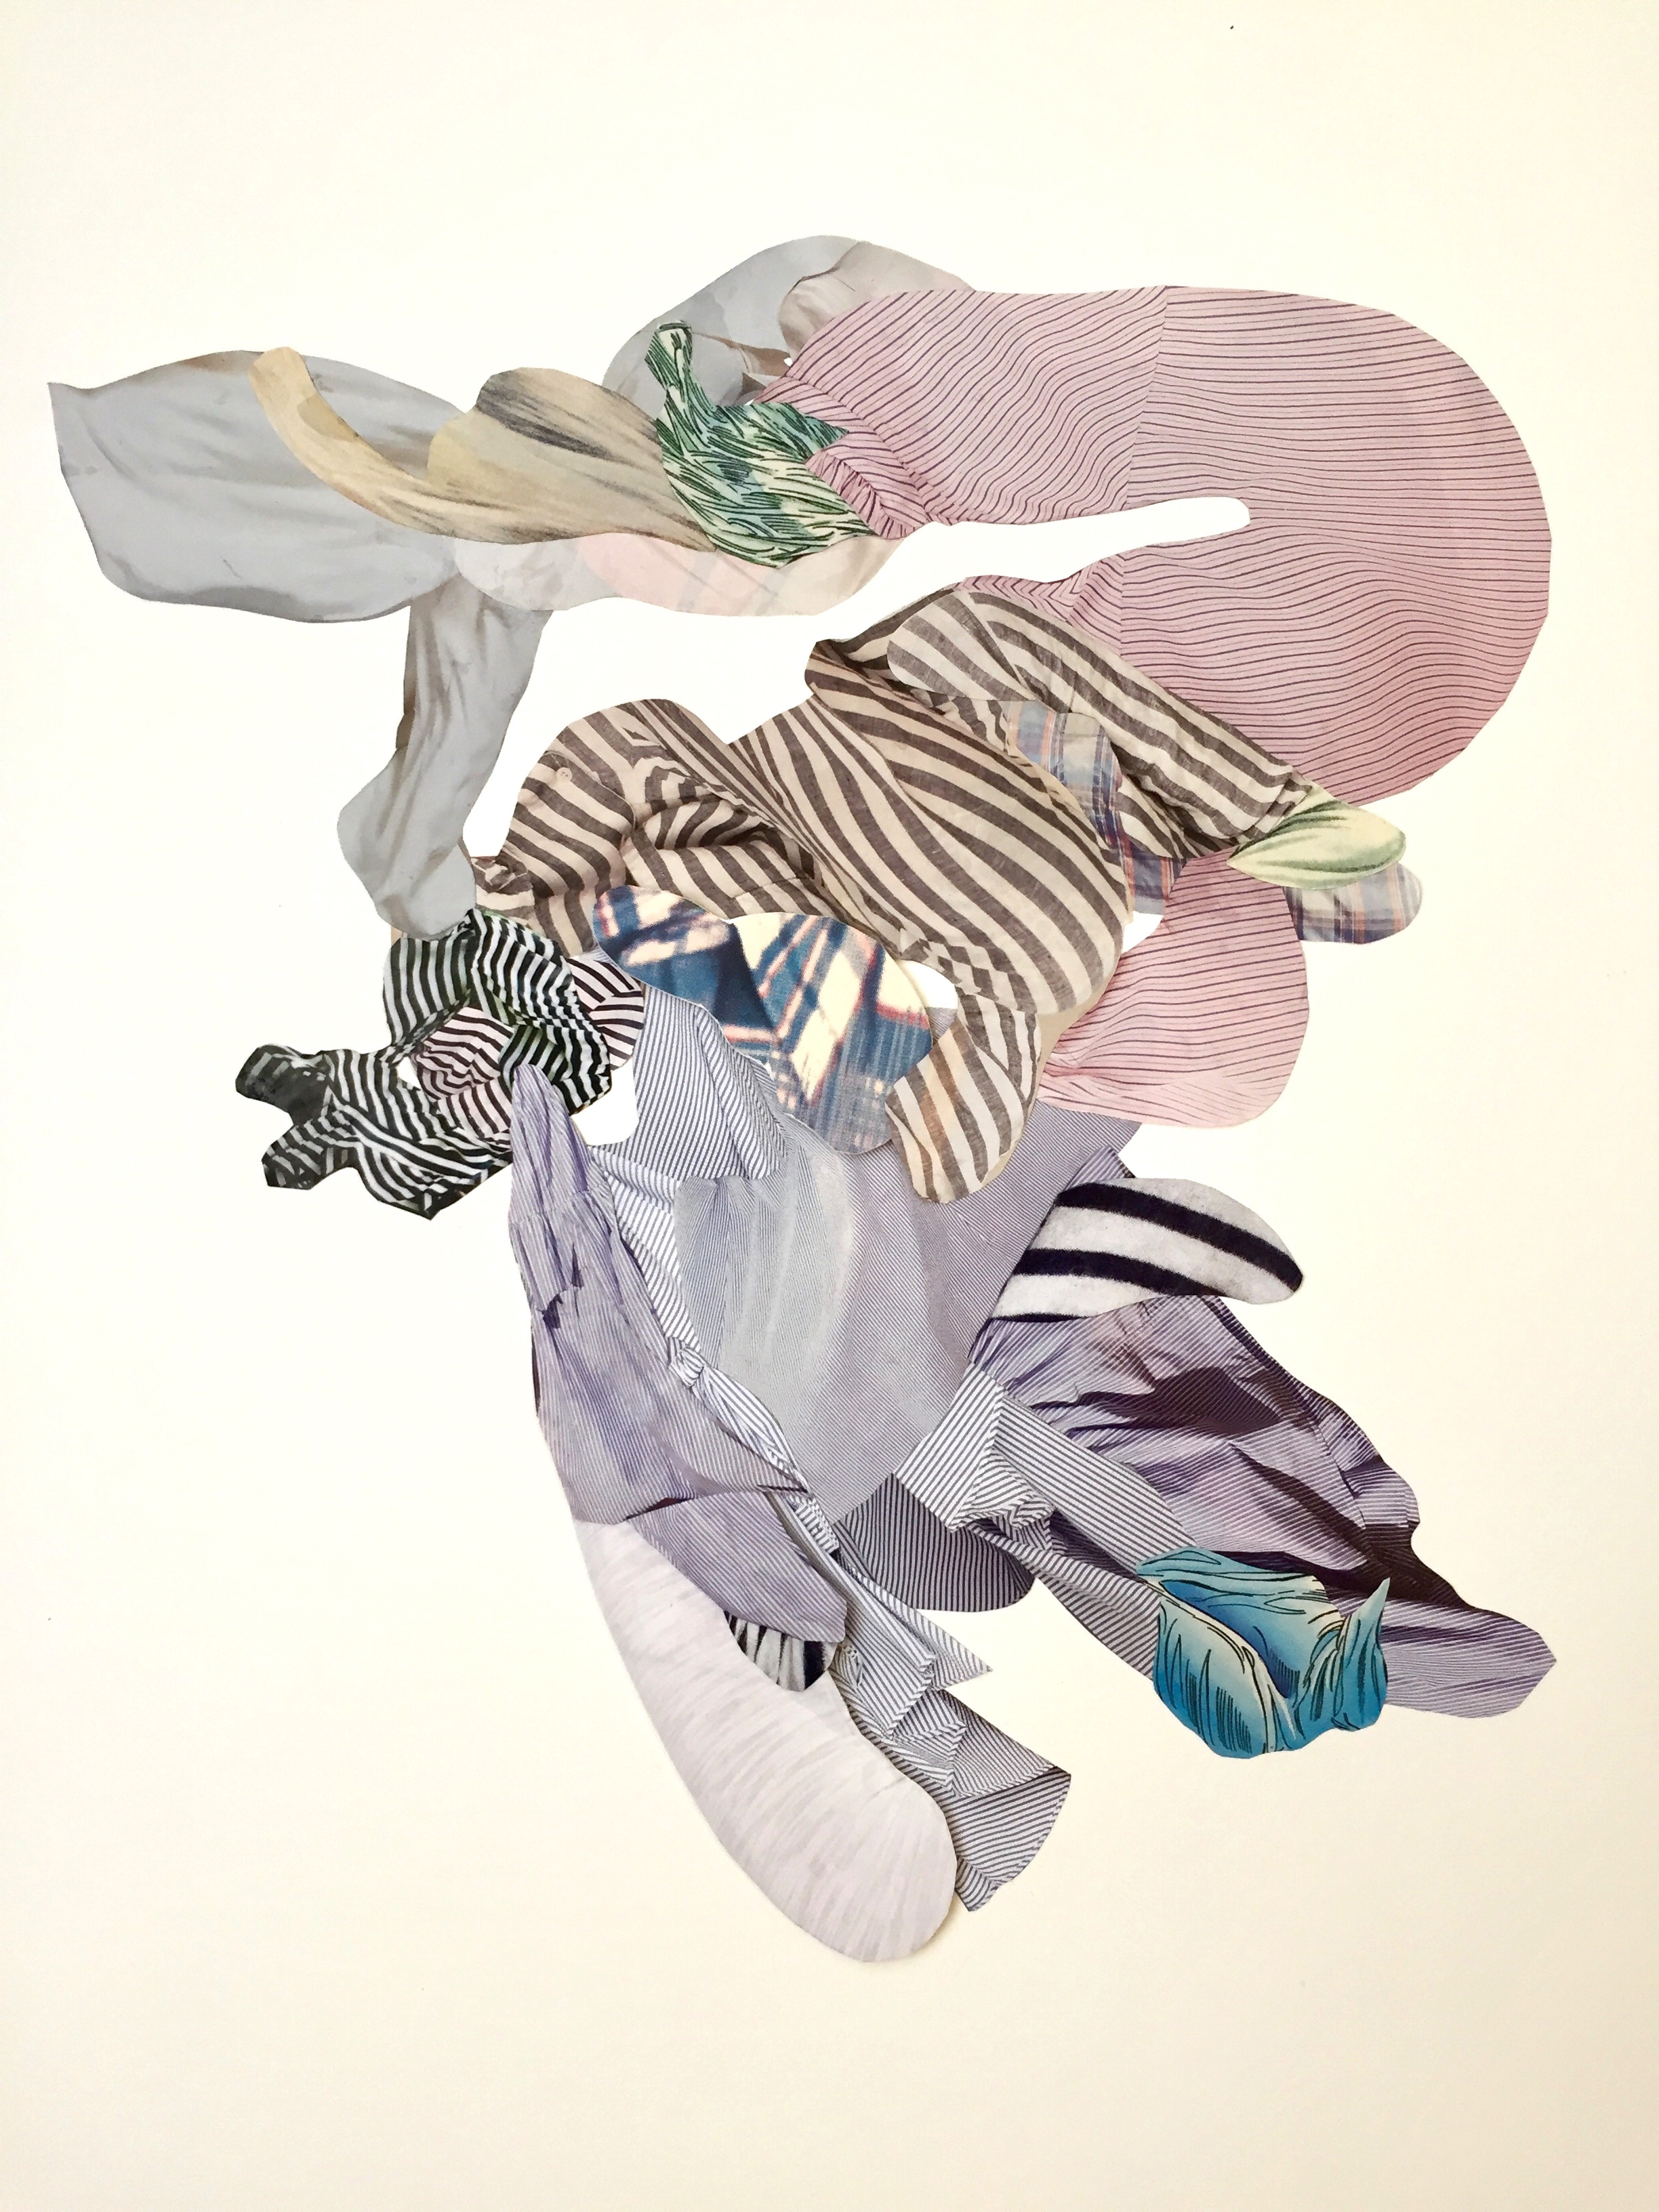 A large format collage of organic shapes with patterns that resemble clothes on a clothesline blowing in the wind.